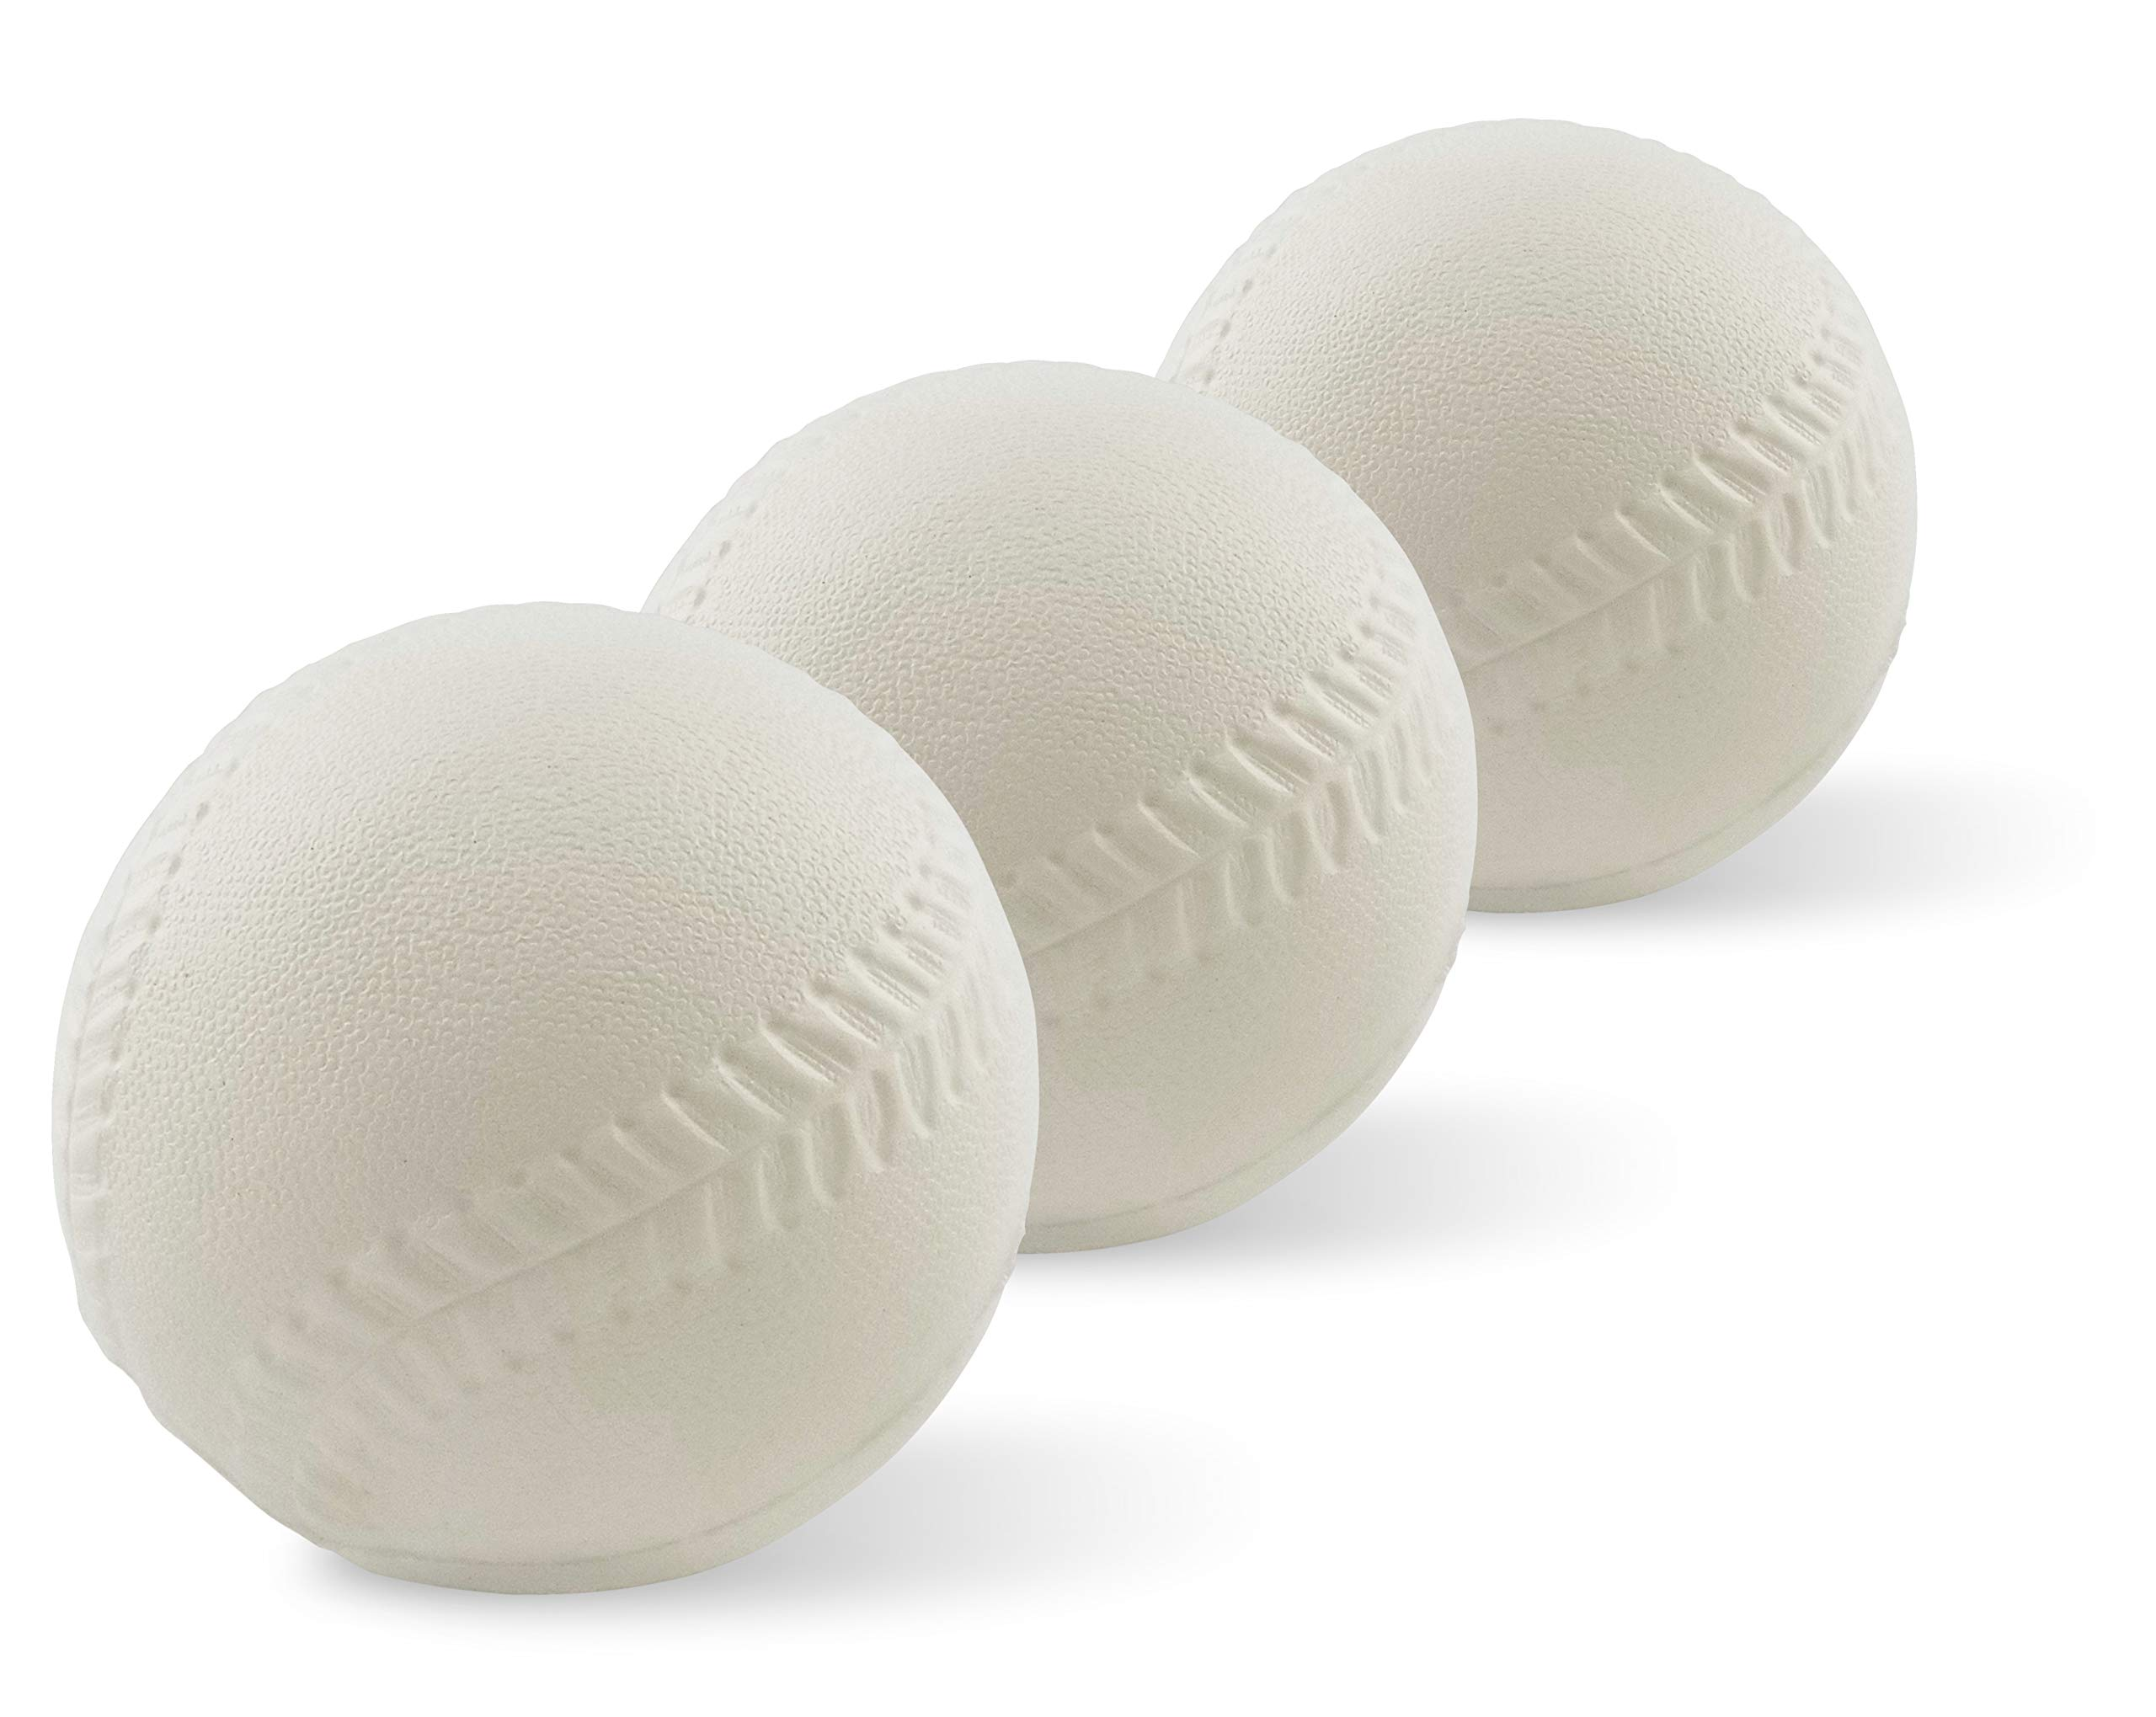 Foam Replacement Baseballs - for Fisher-Price Triple Hit Pitching Machine - 3 Pack by Botabee